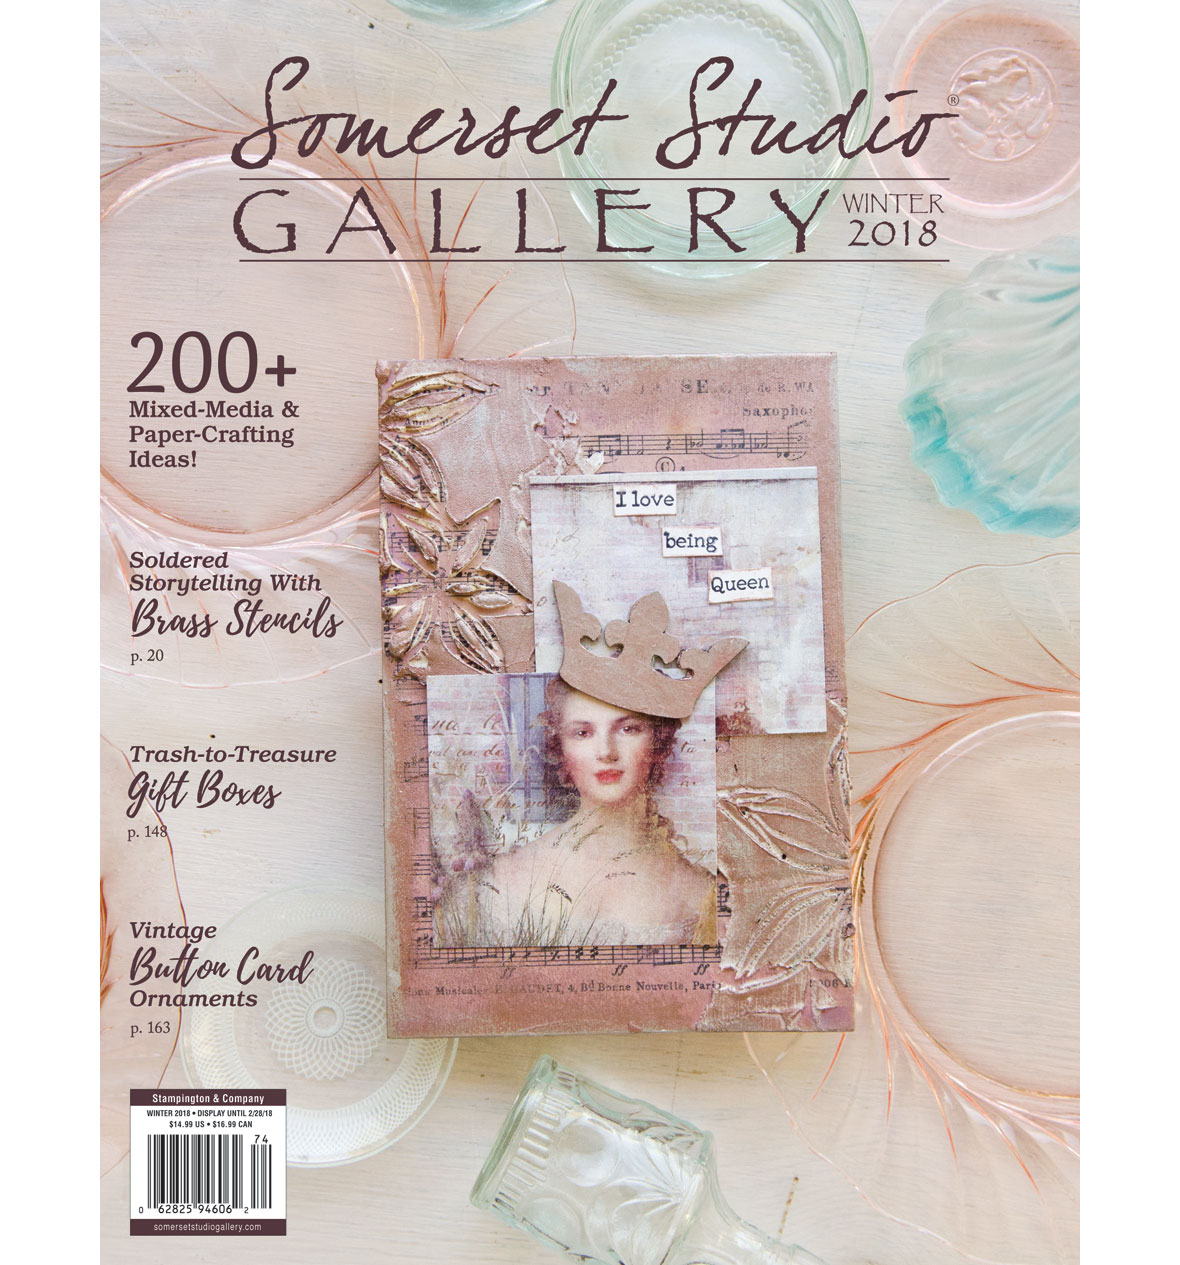 Somerset Studio Gallery Magazine